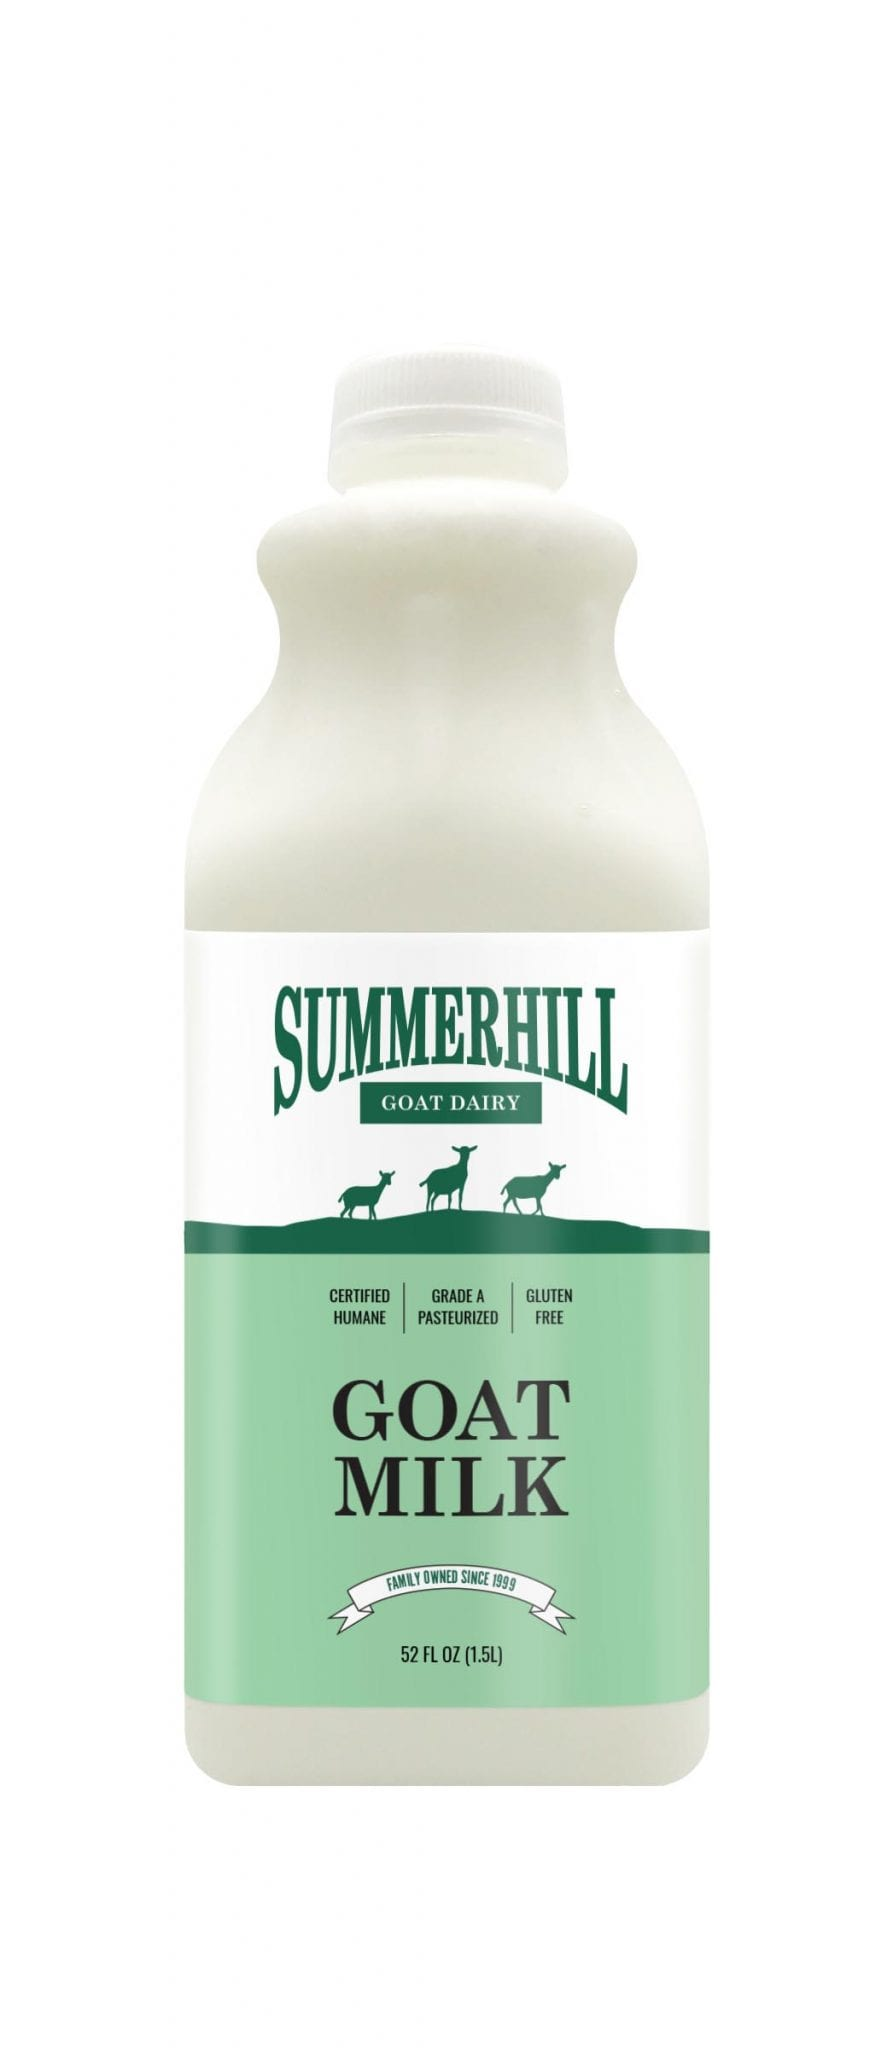 Goat milk 52oz bottle